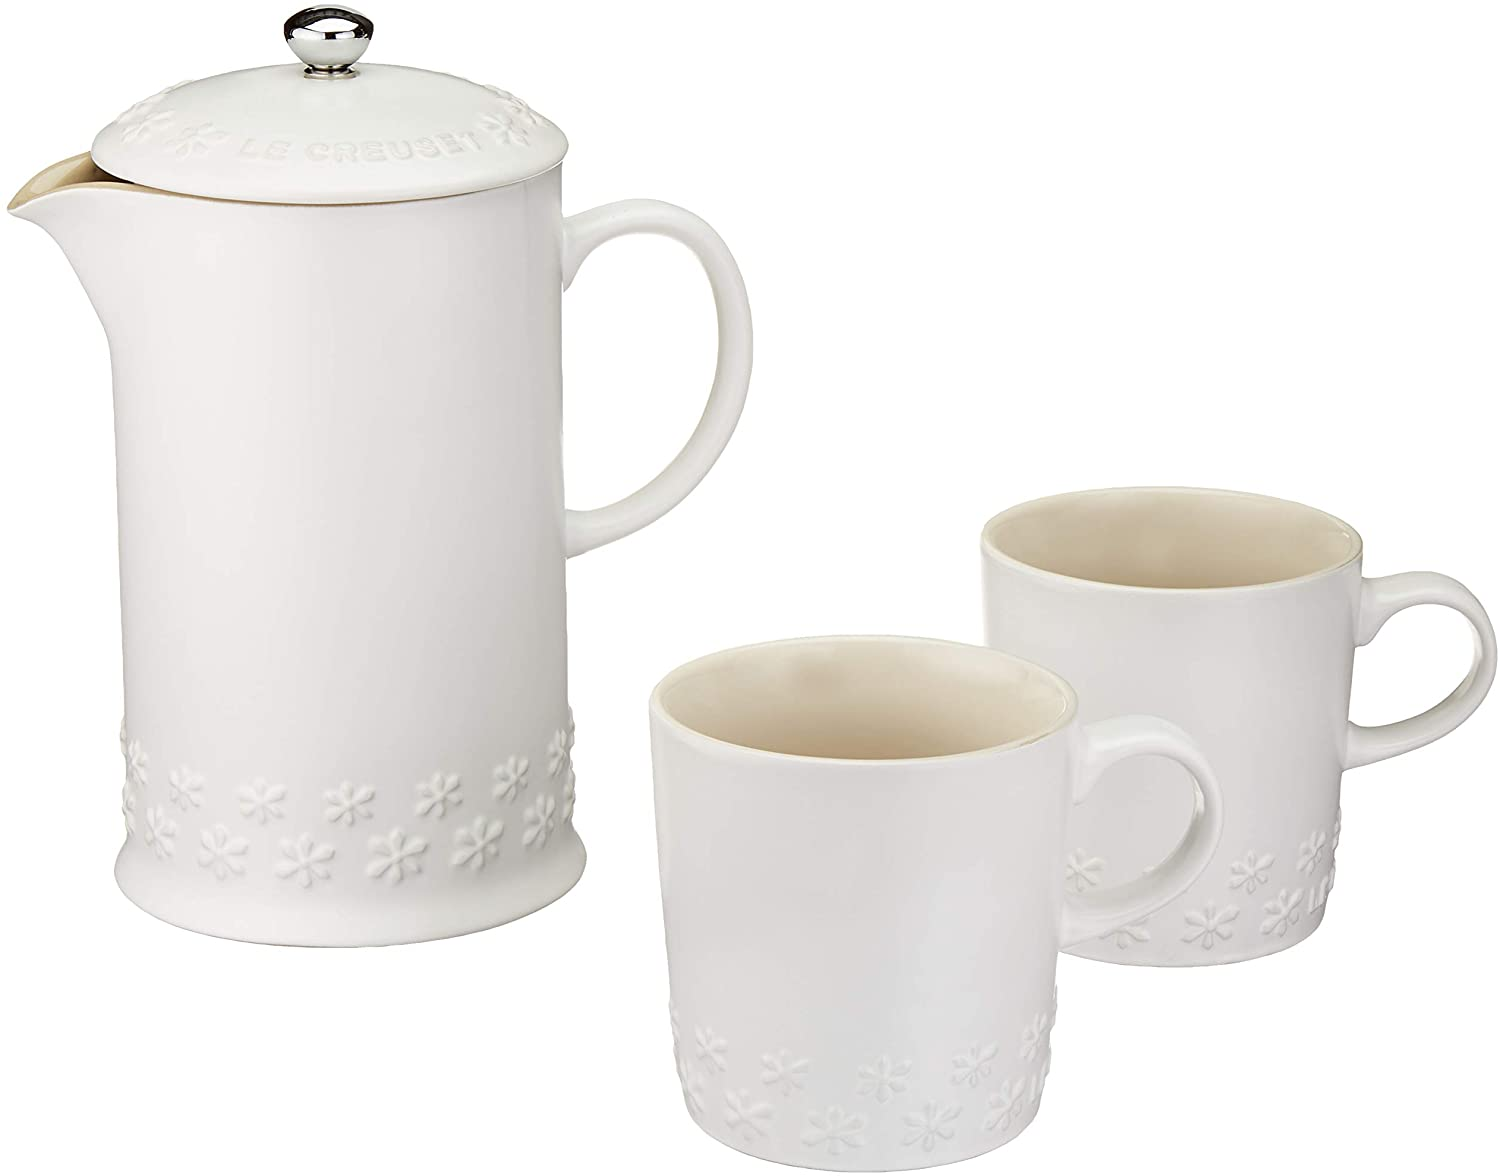 white french press and set of two mugs